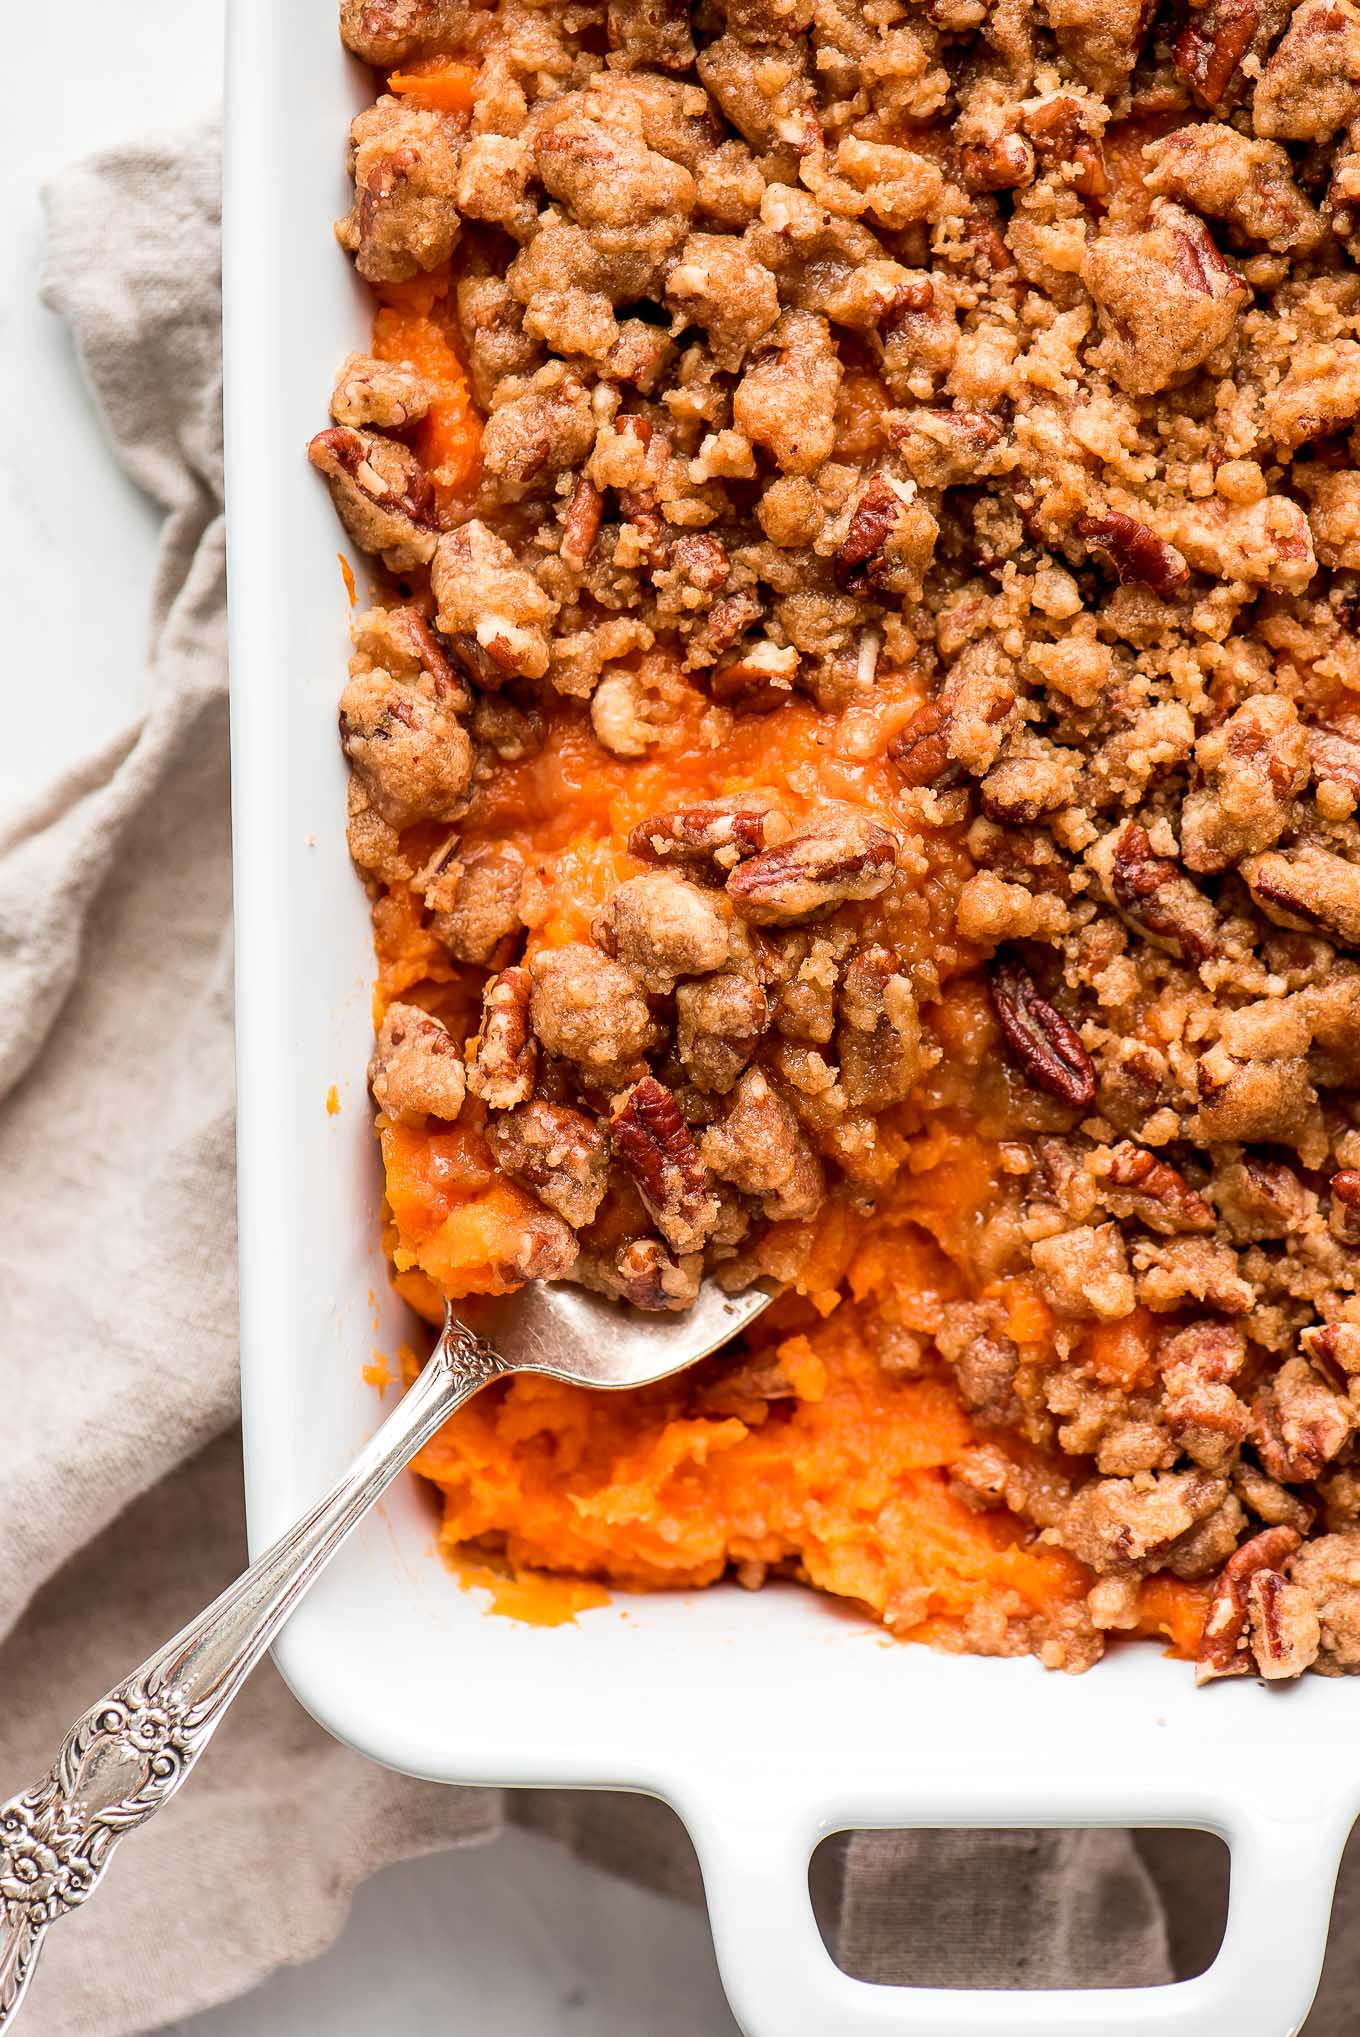 Close up of Sweet Potato Casserole with a spoon in the dish.